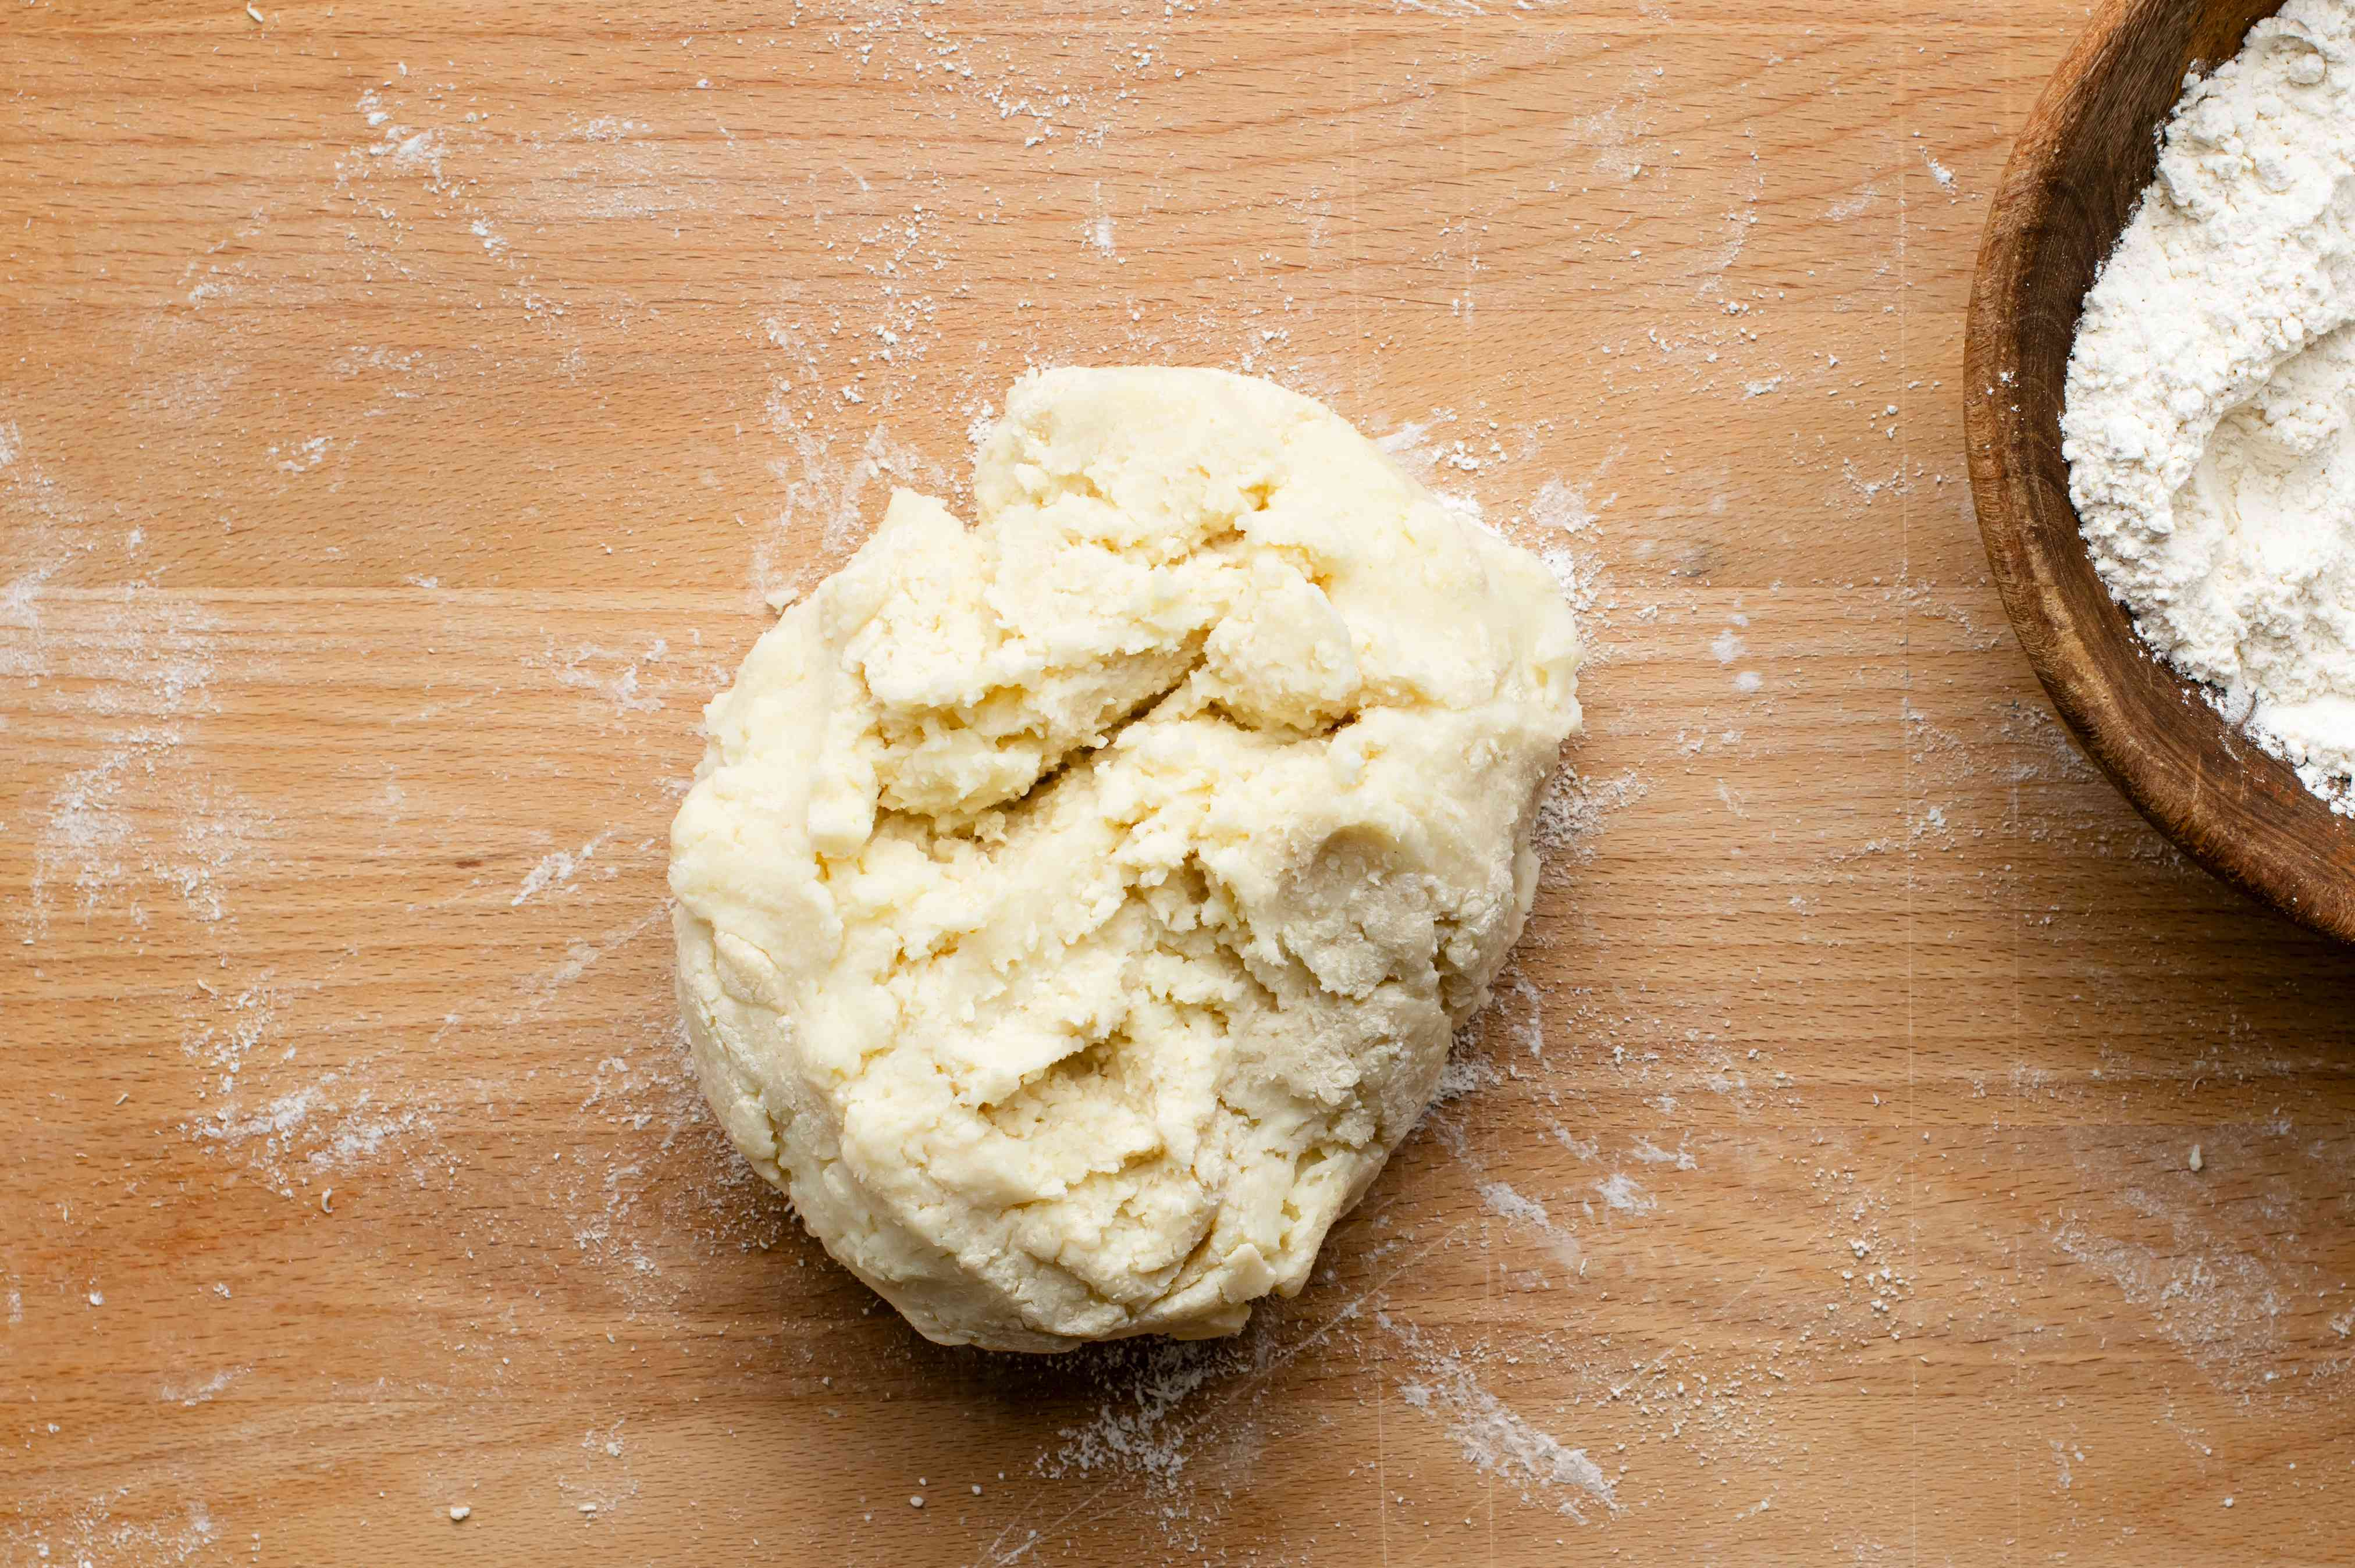 Potato and flour mixture kneaded together for gnocchi